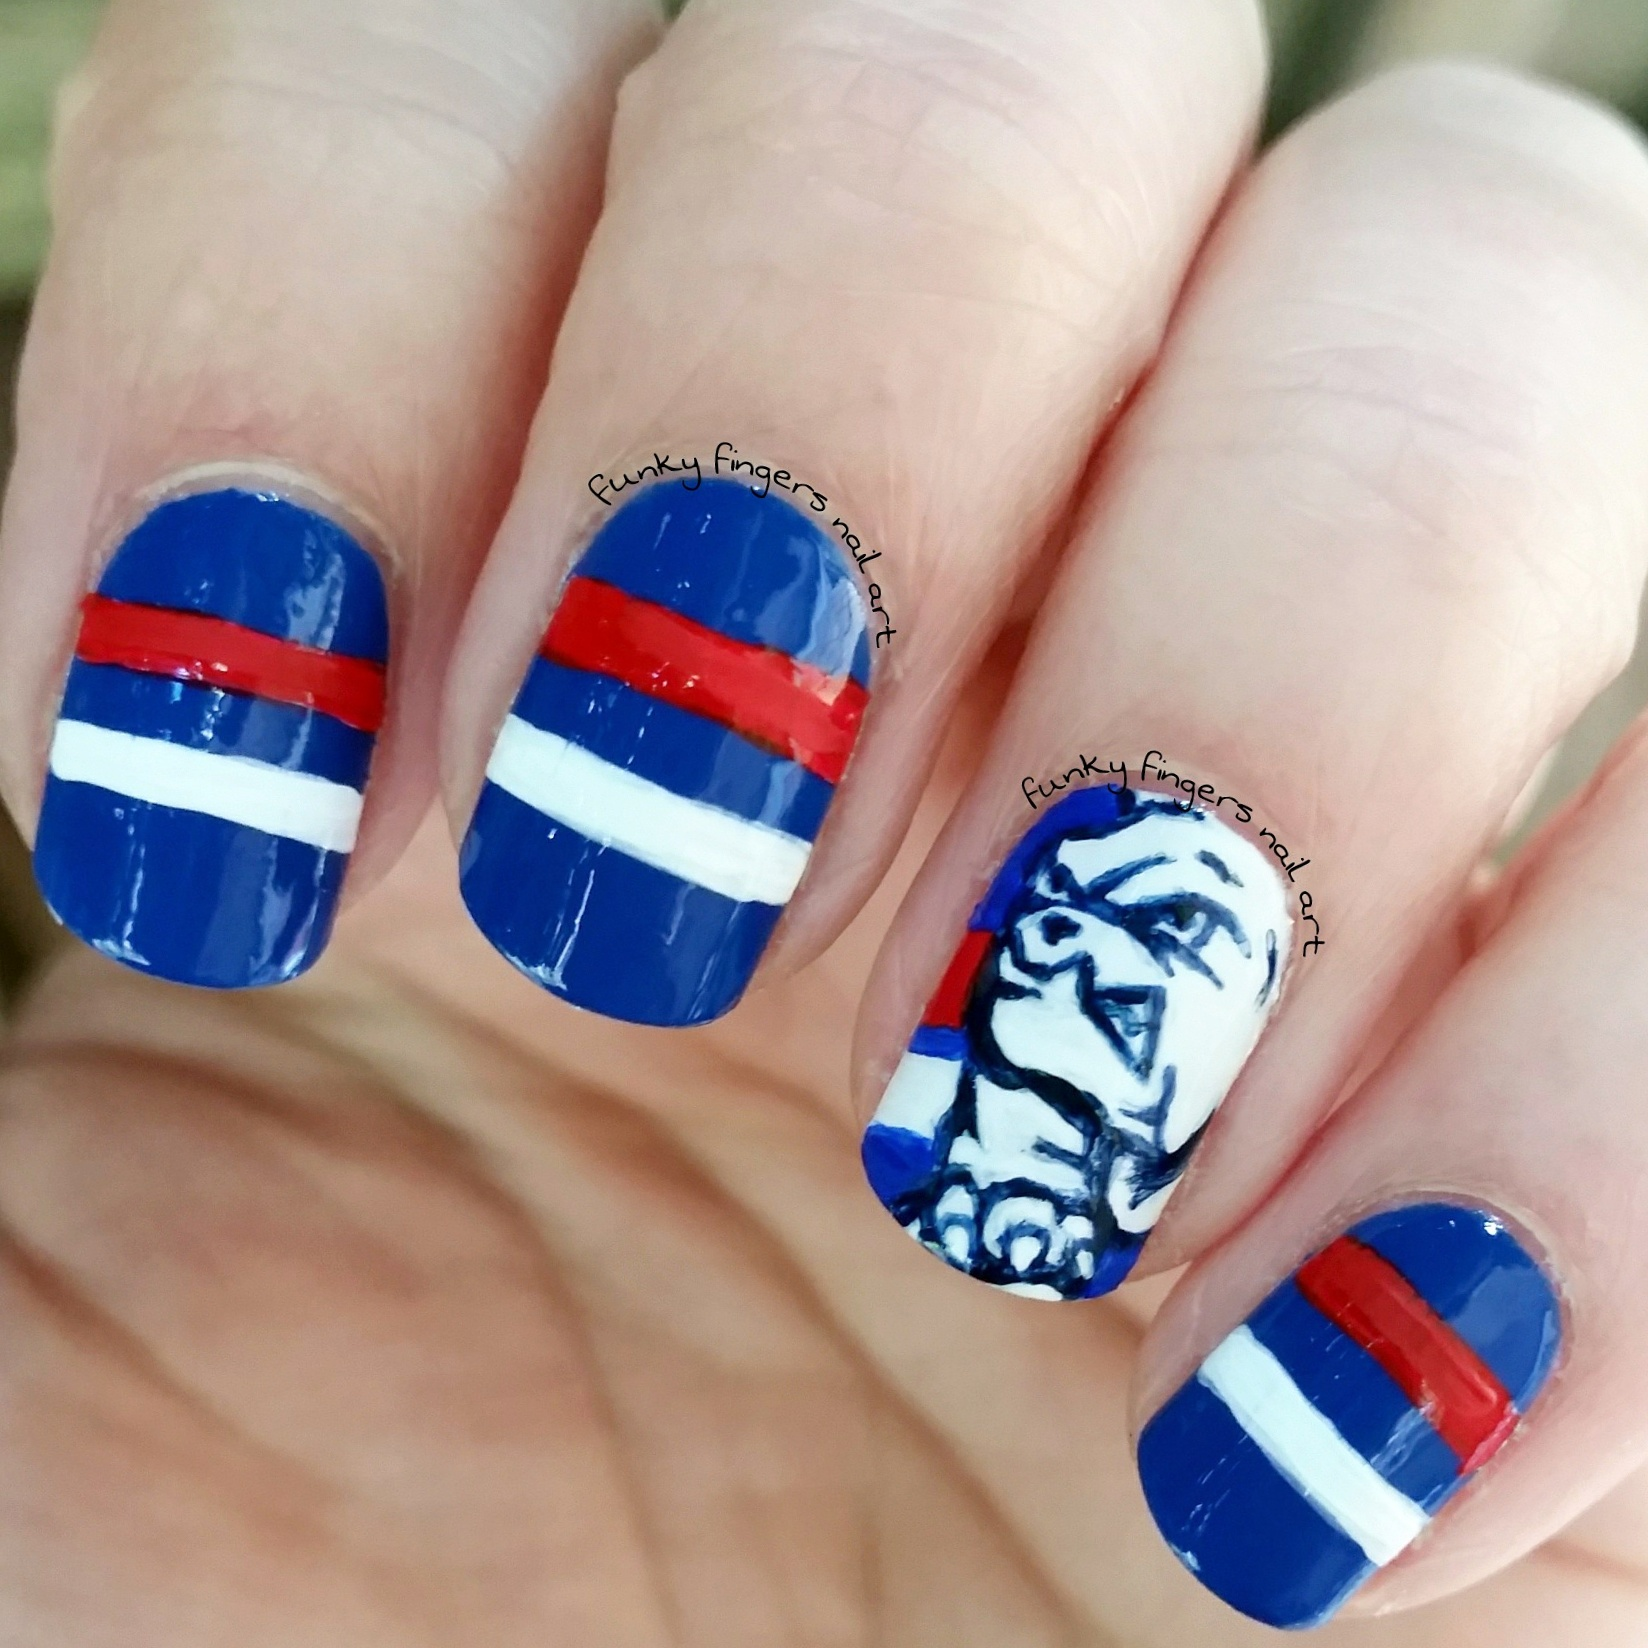 Bulldogs football nails nail art by Funky fingers nail art